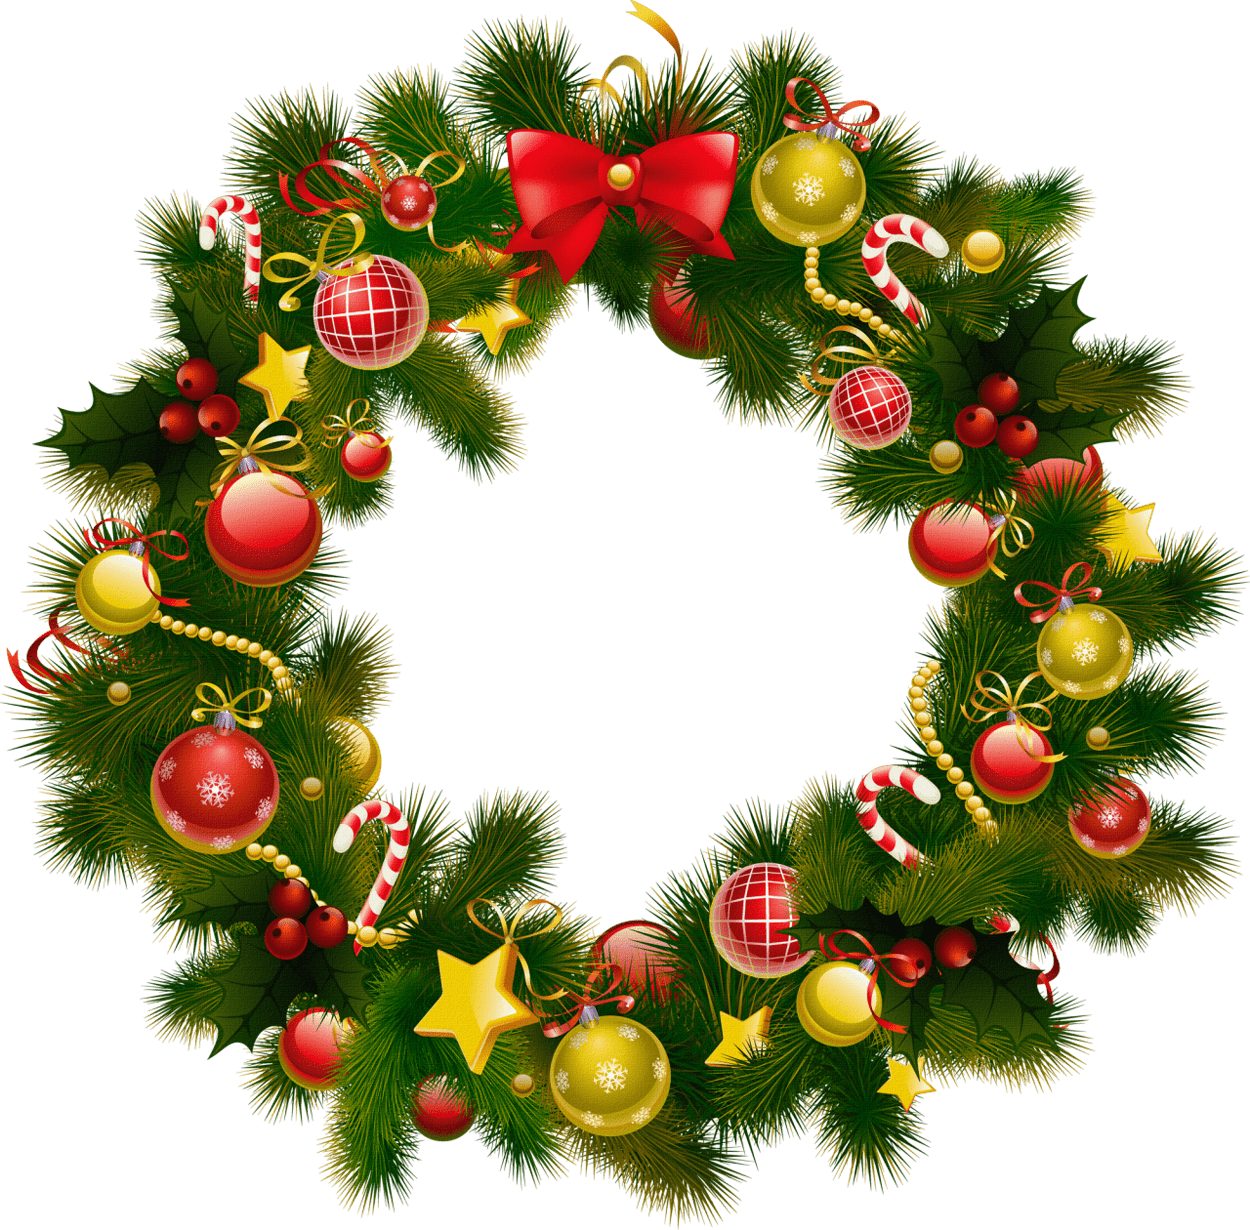 Christmas Wreath Png.Simple Christmas Wreath Transparent Png Stickpng